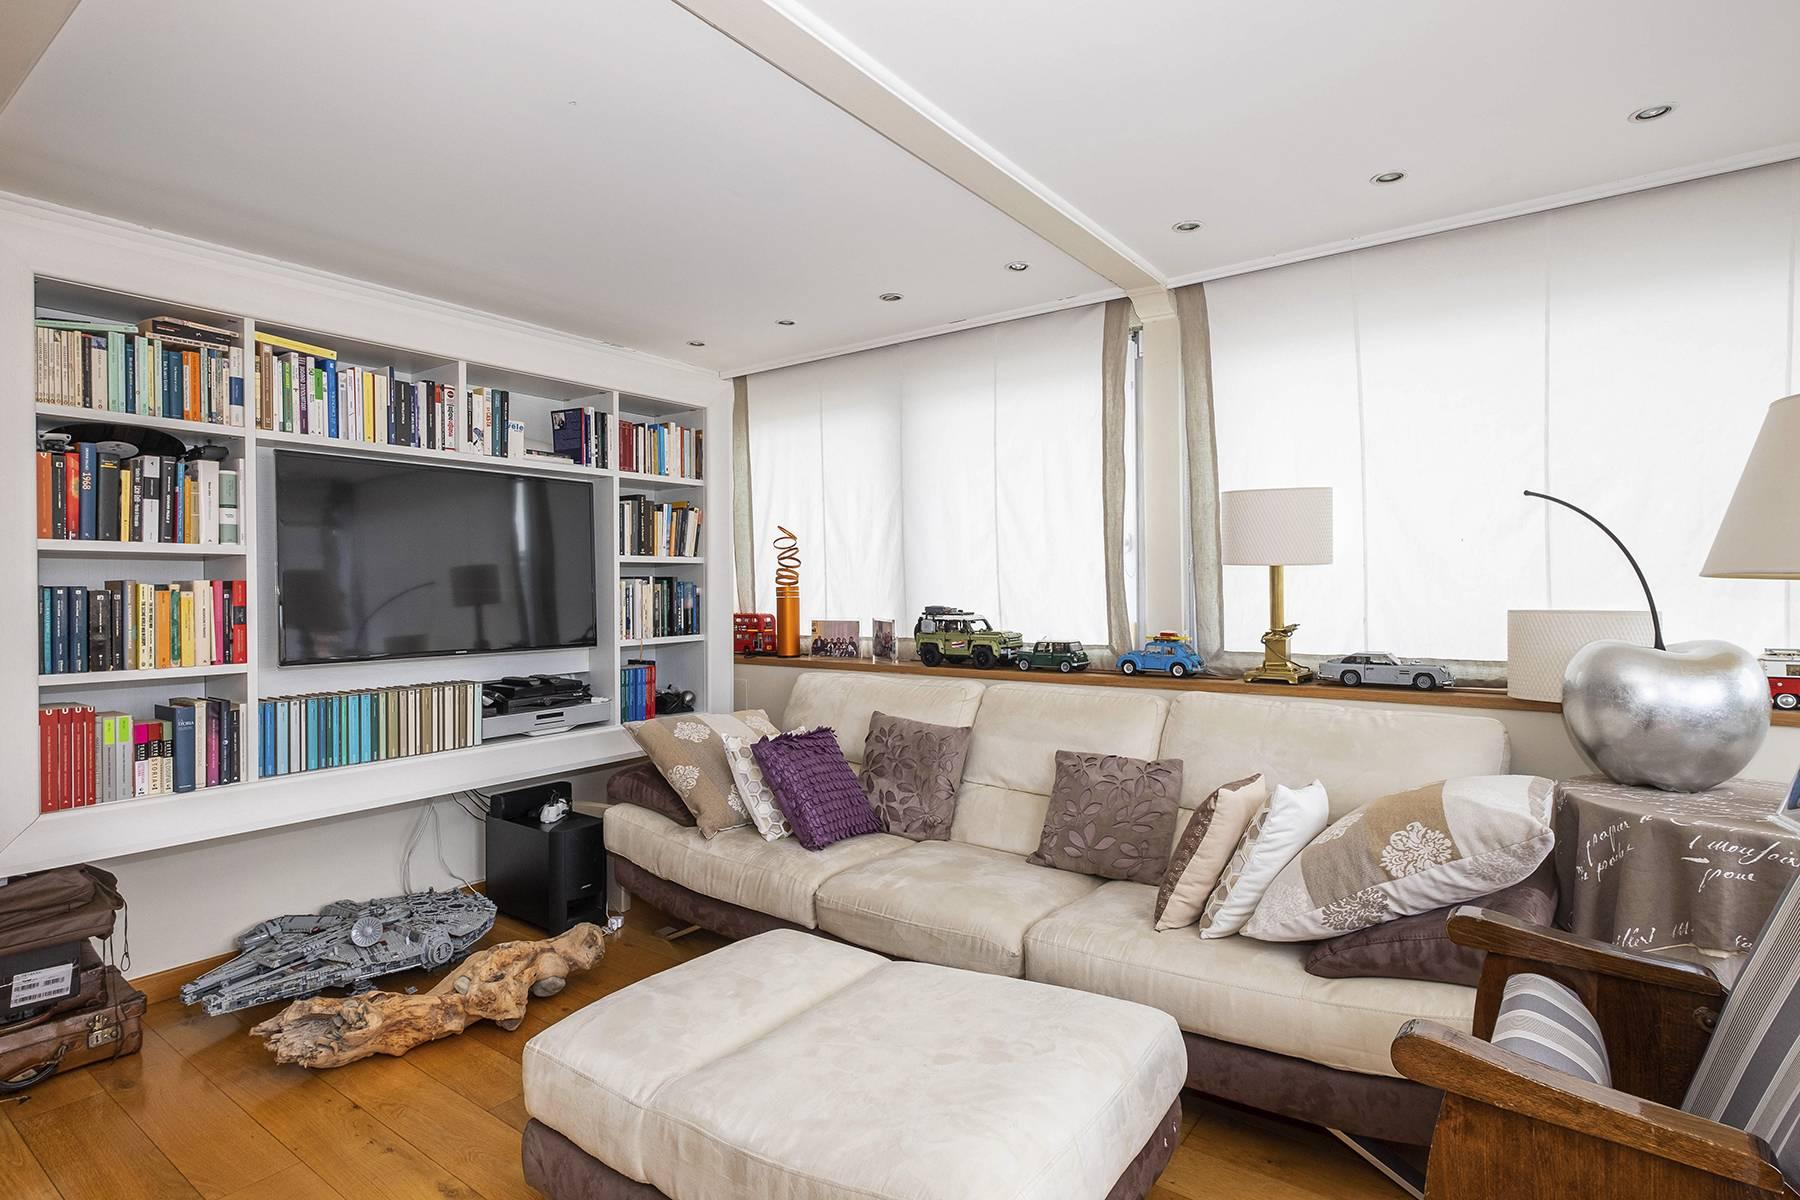 Modern penthouse with stunning 70 sqm terrace a stone's throw from Villa Borghese - 18